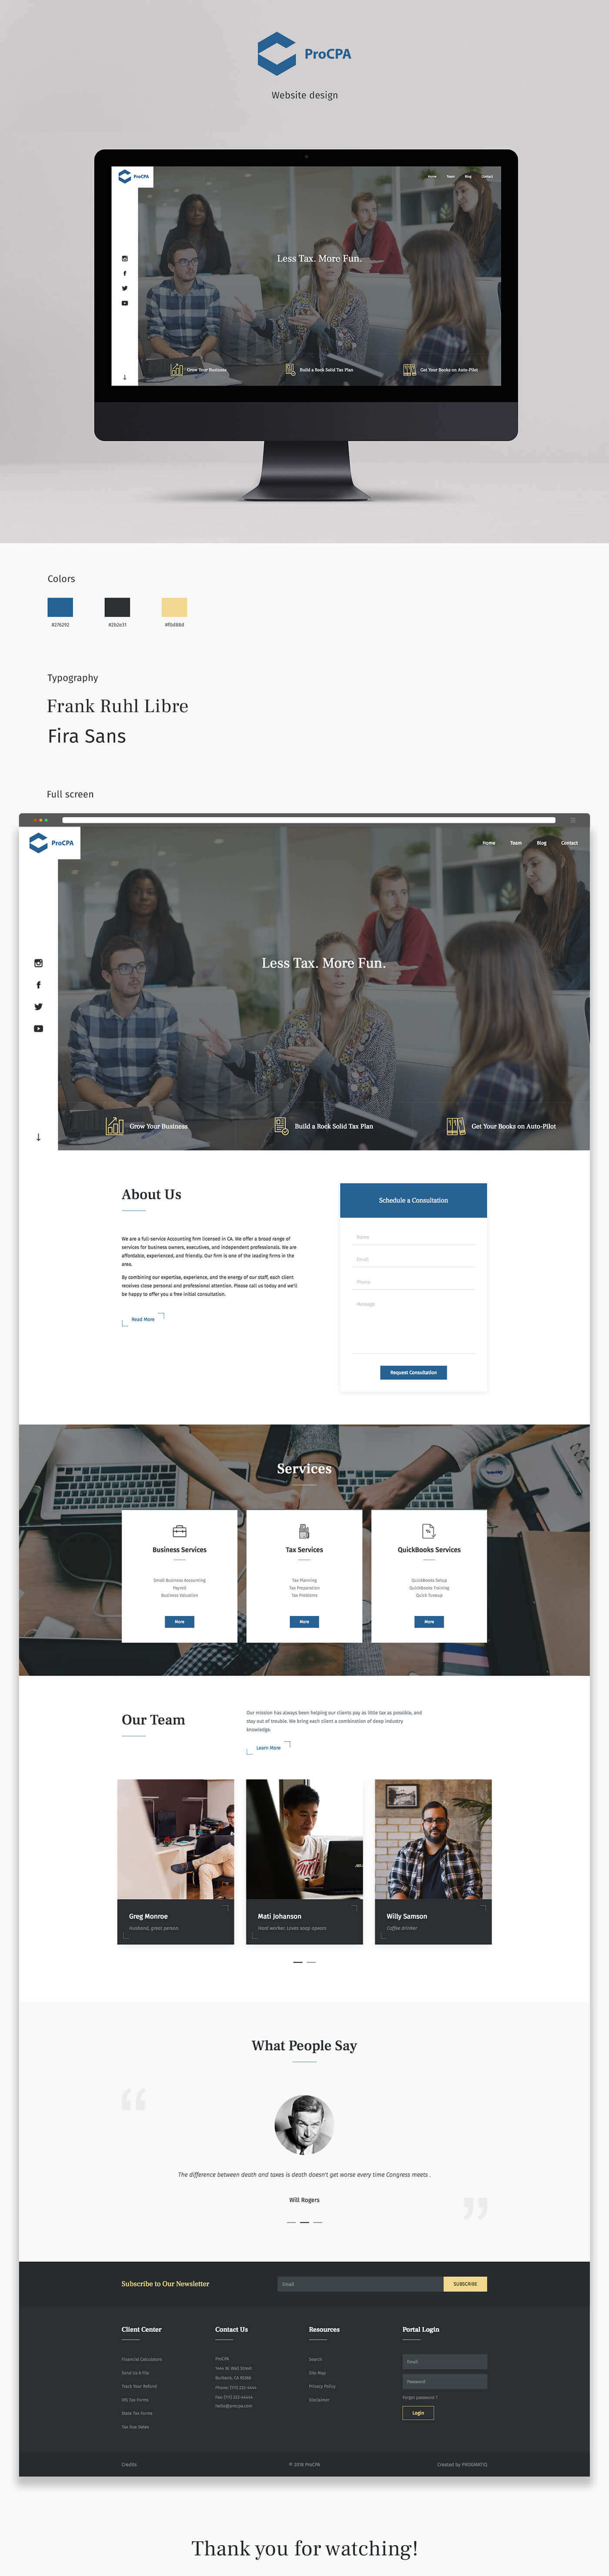 PROCPA website template design